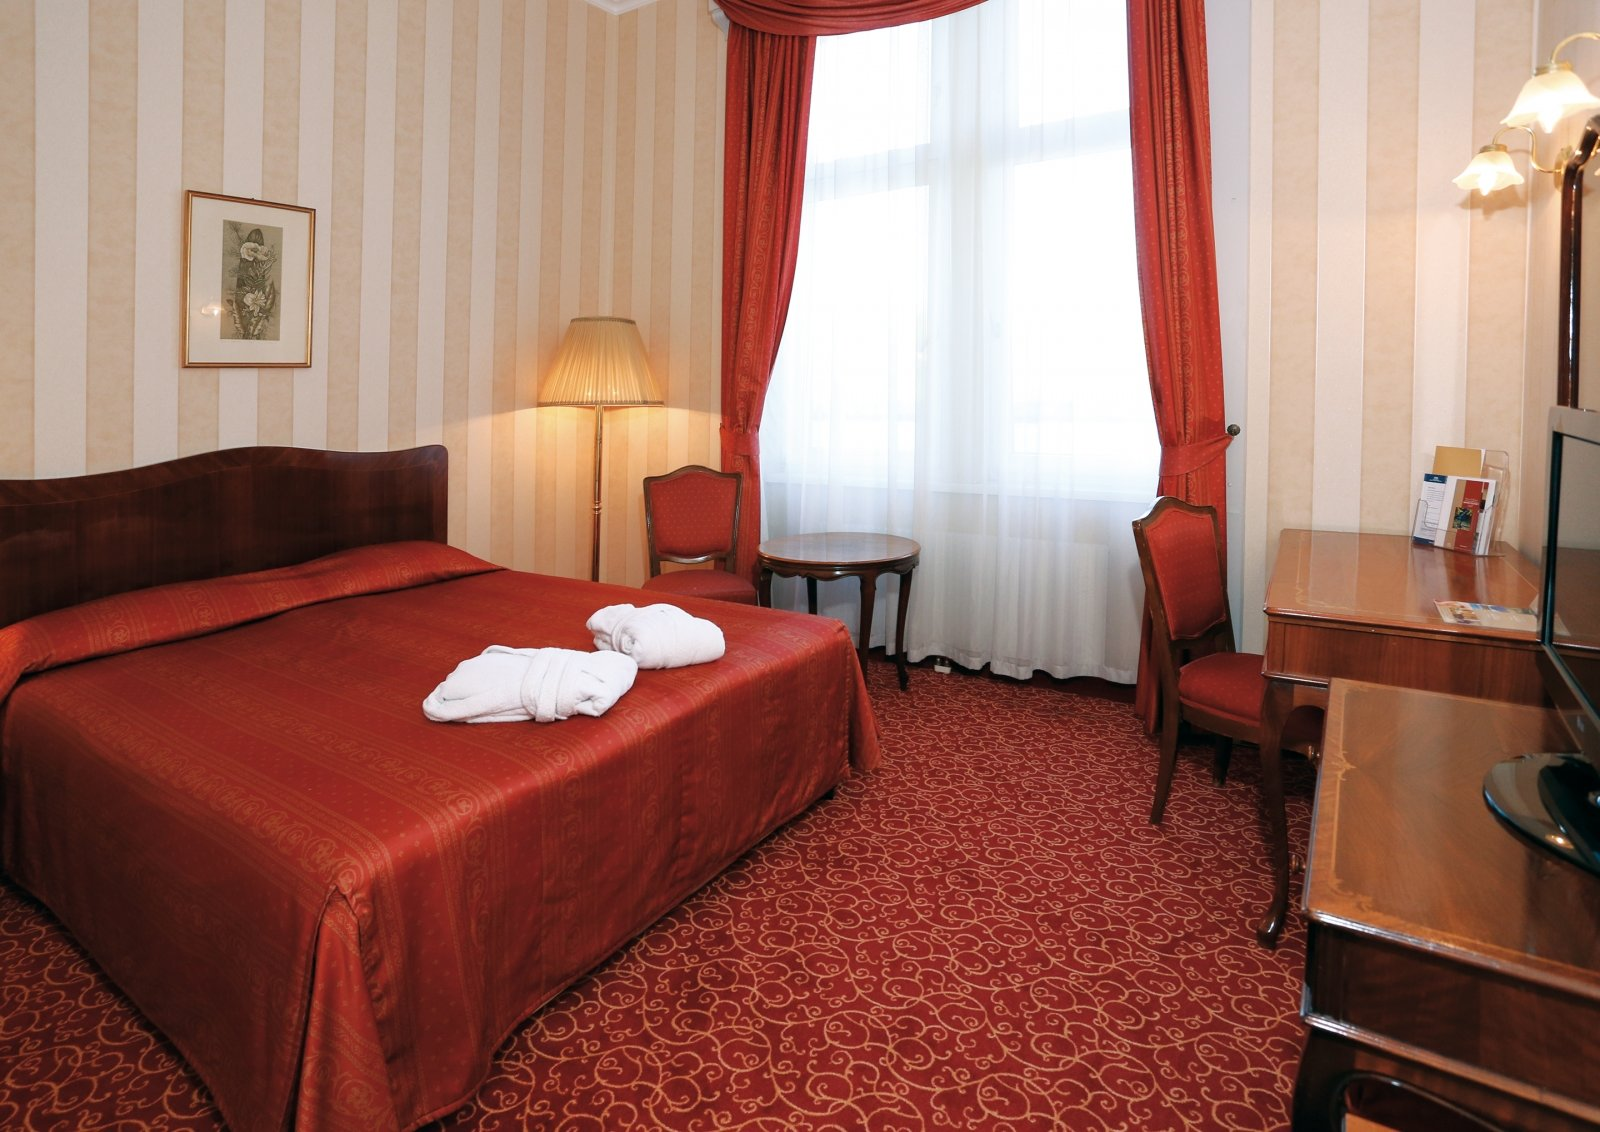 Danubius double room